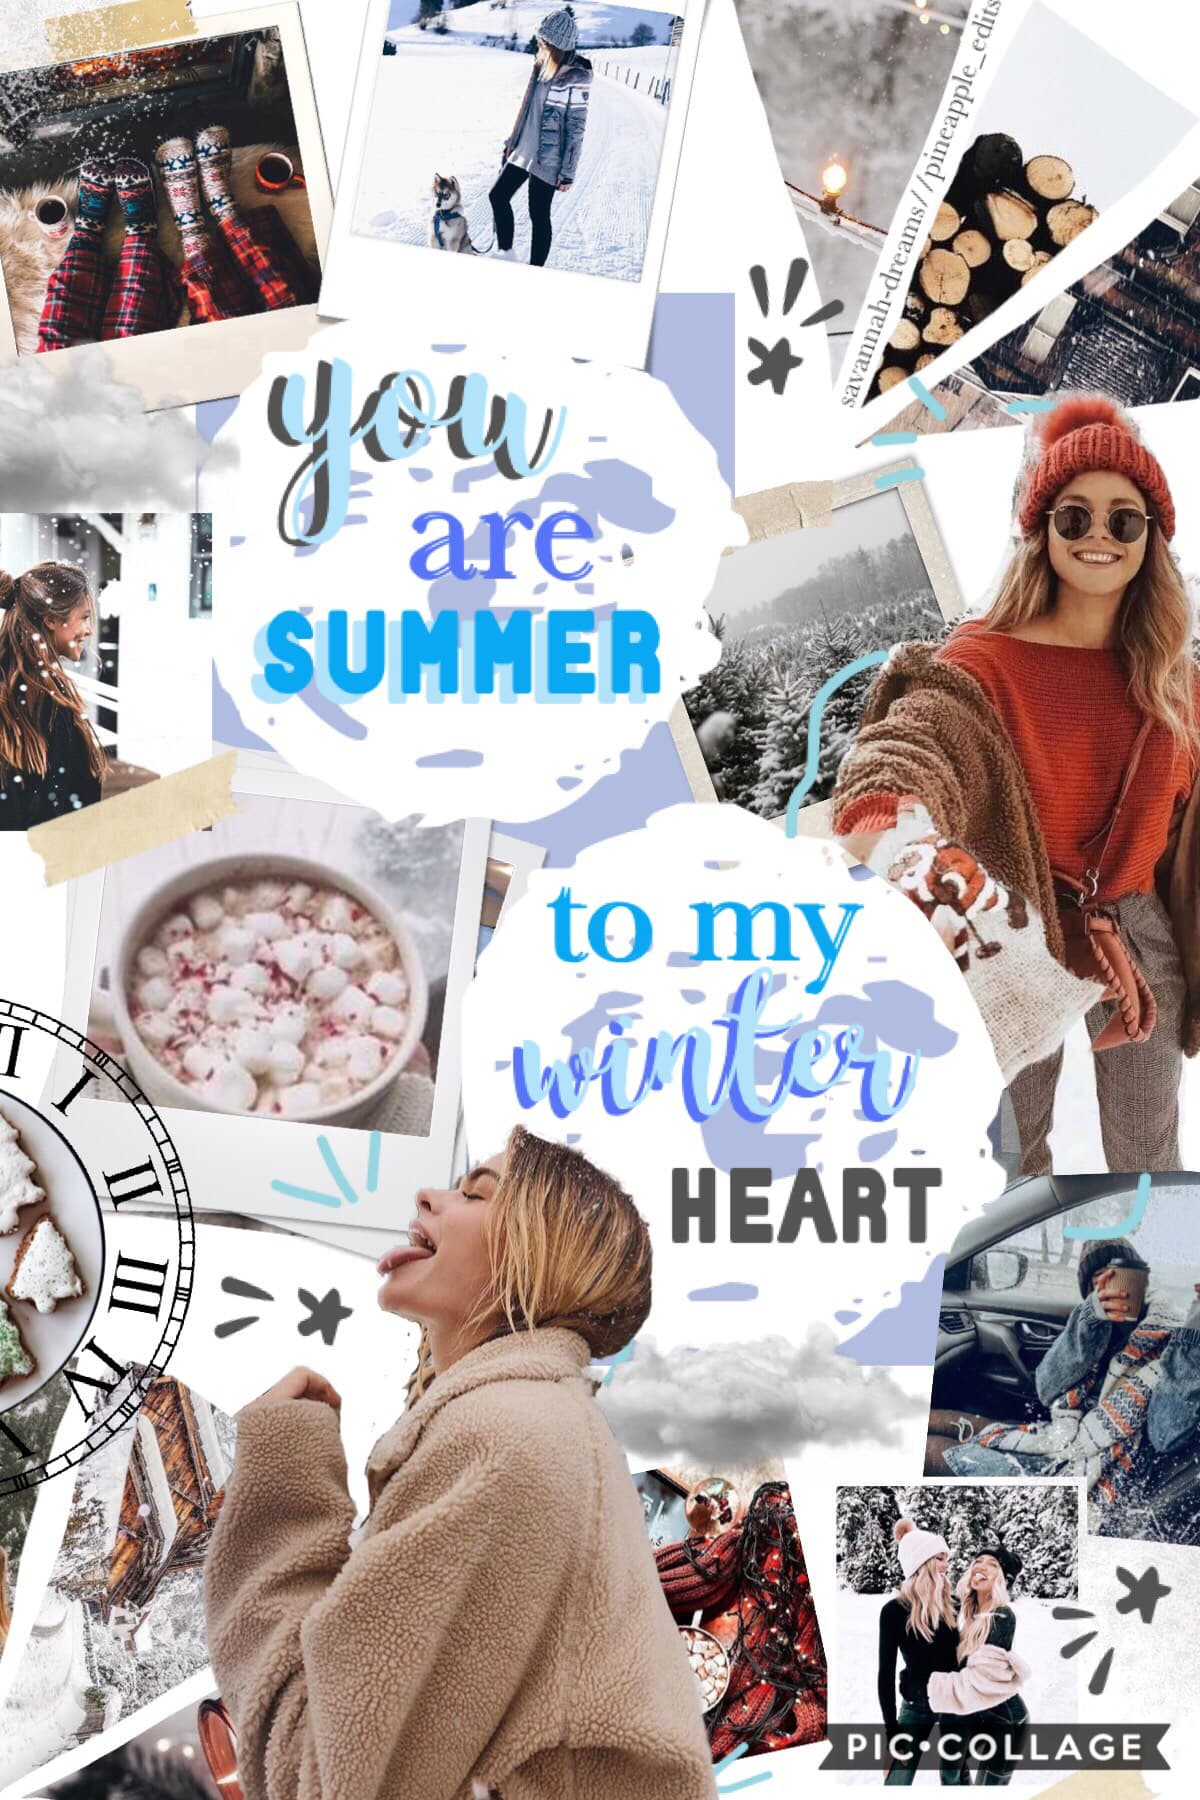 oop it's a bit early for winter collages but oh well 🤷🏼‍♀️🌨❄️ this is a collab with @pineapple_edits ✨🐋 she found one of the bgs and i did everything else 🐚✌🏼